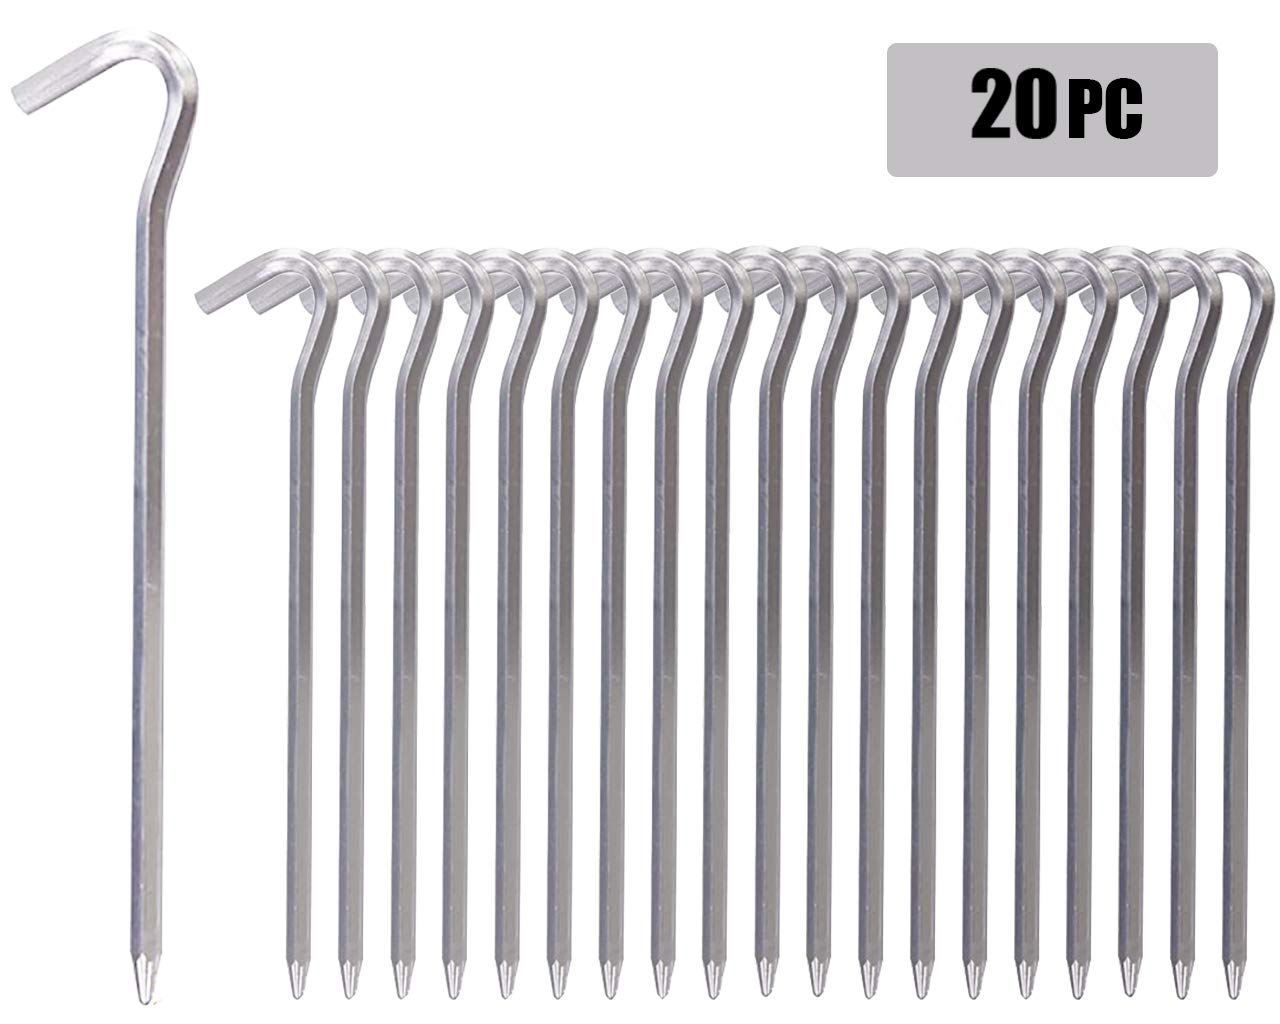 RIY 7'' Camping Tent Stakes Aluminum Heavy Duty Garden Canopy Stakes Pegs for Plants 20pcs by RIY